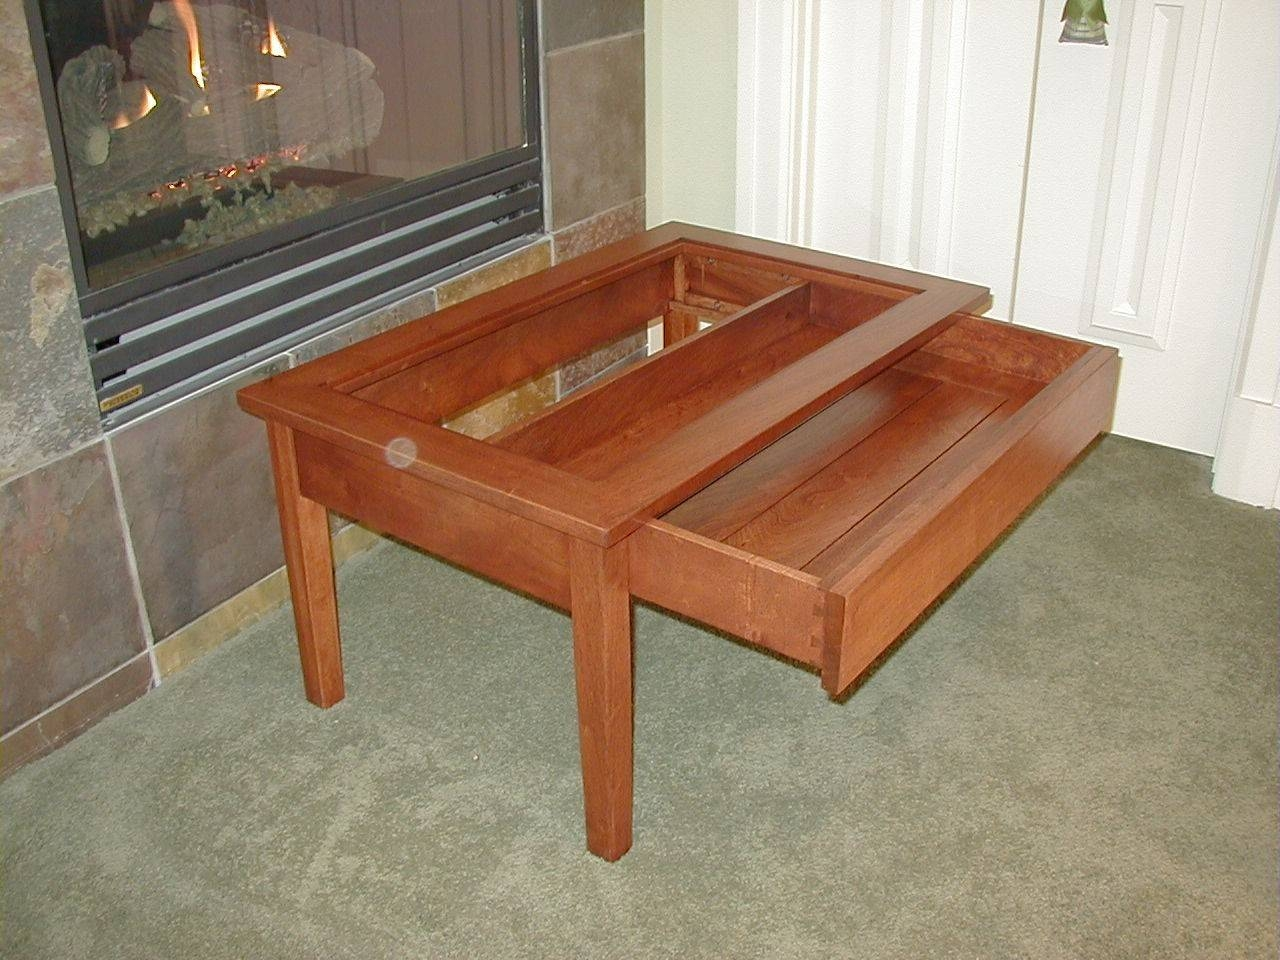 Display Case Coffee Table Ideas: Brown Square Antique with Glass Top  Display Coffee